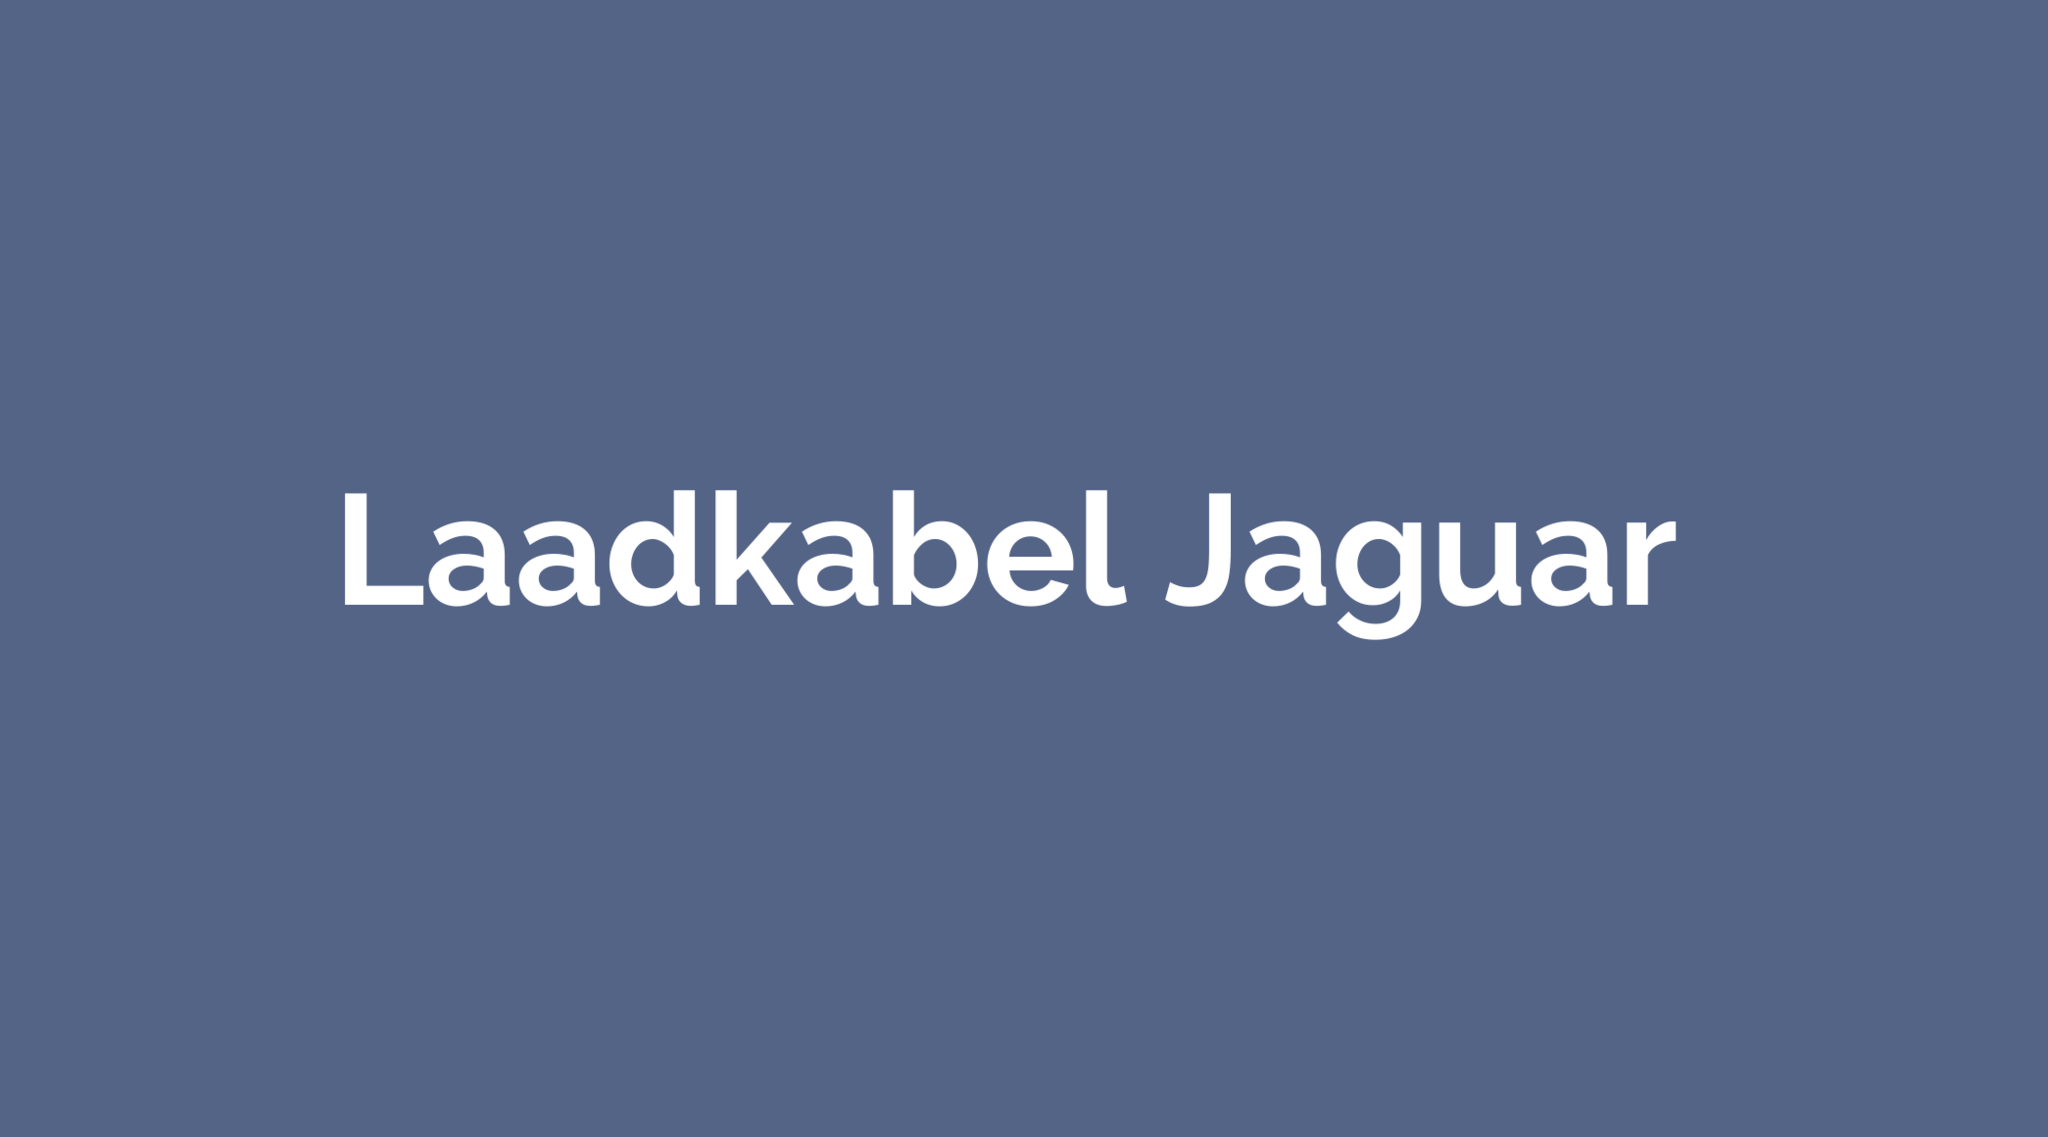 Laadkabel Jaguar